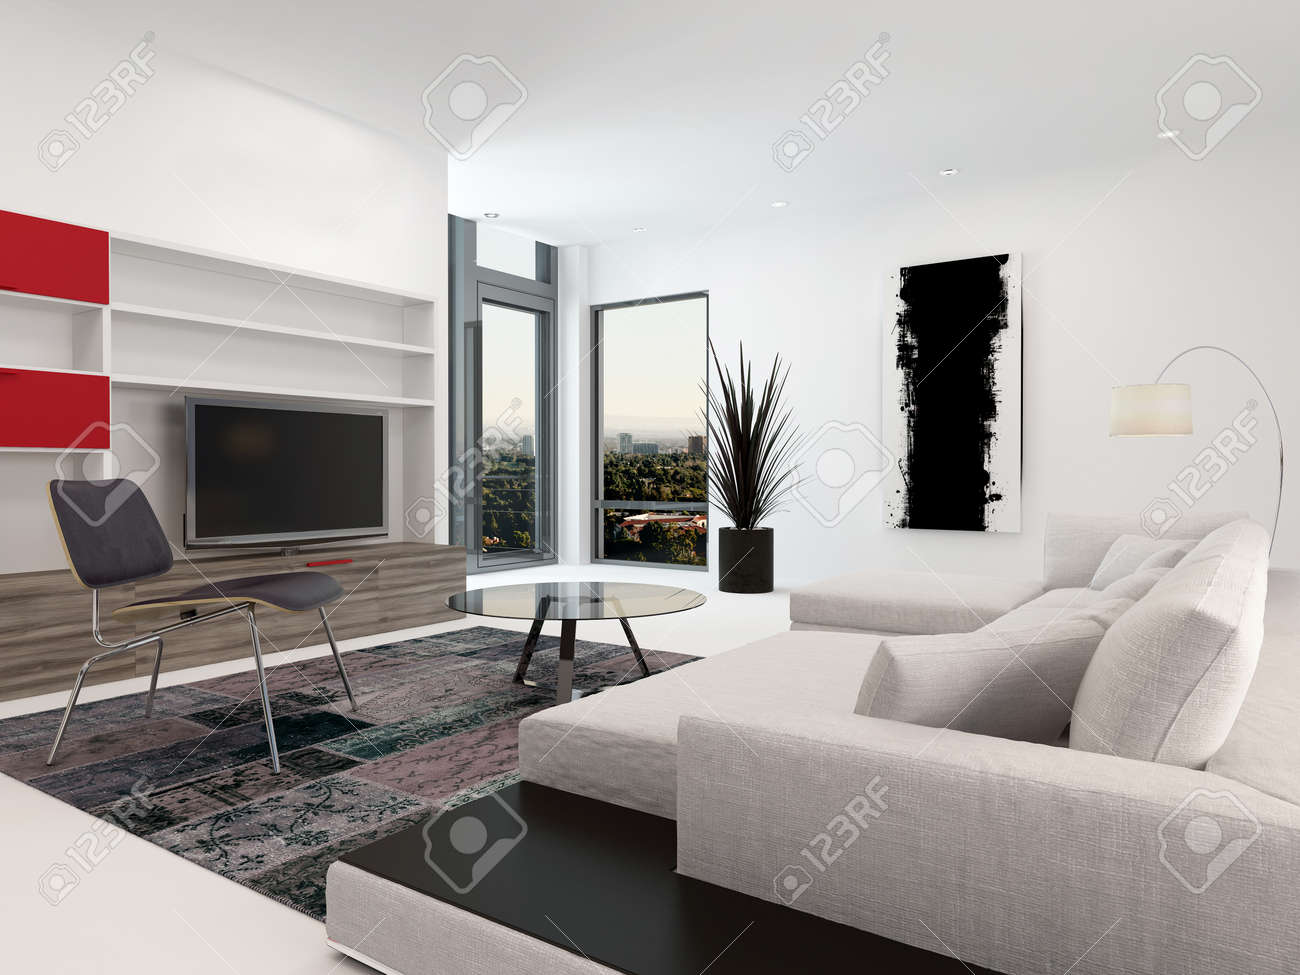 Modern Living Room Interior With A Large Television Set In Wall Mounted  Cabinets, A Part 97